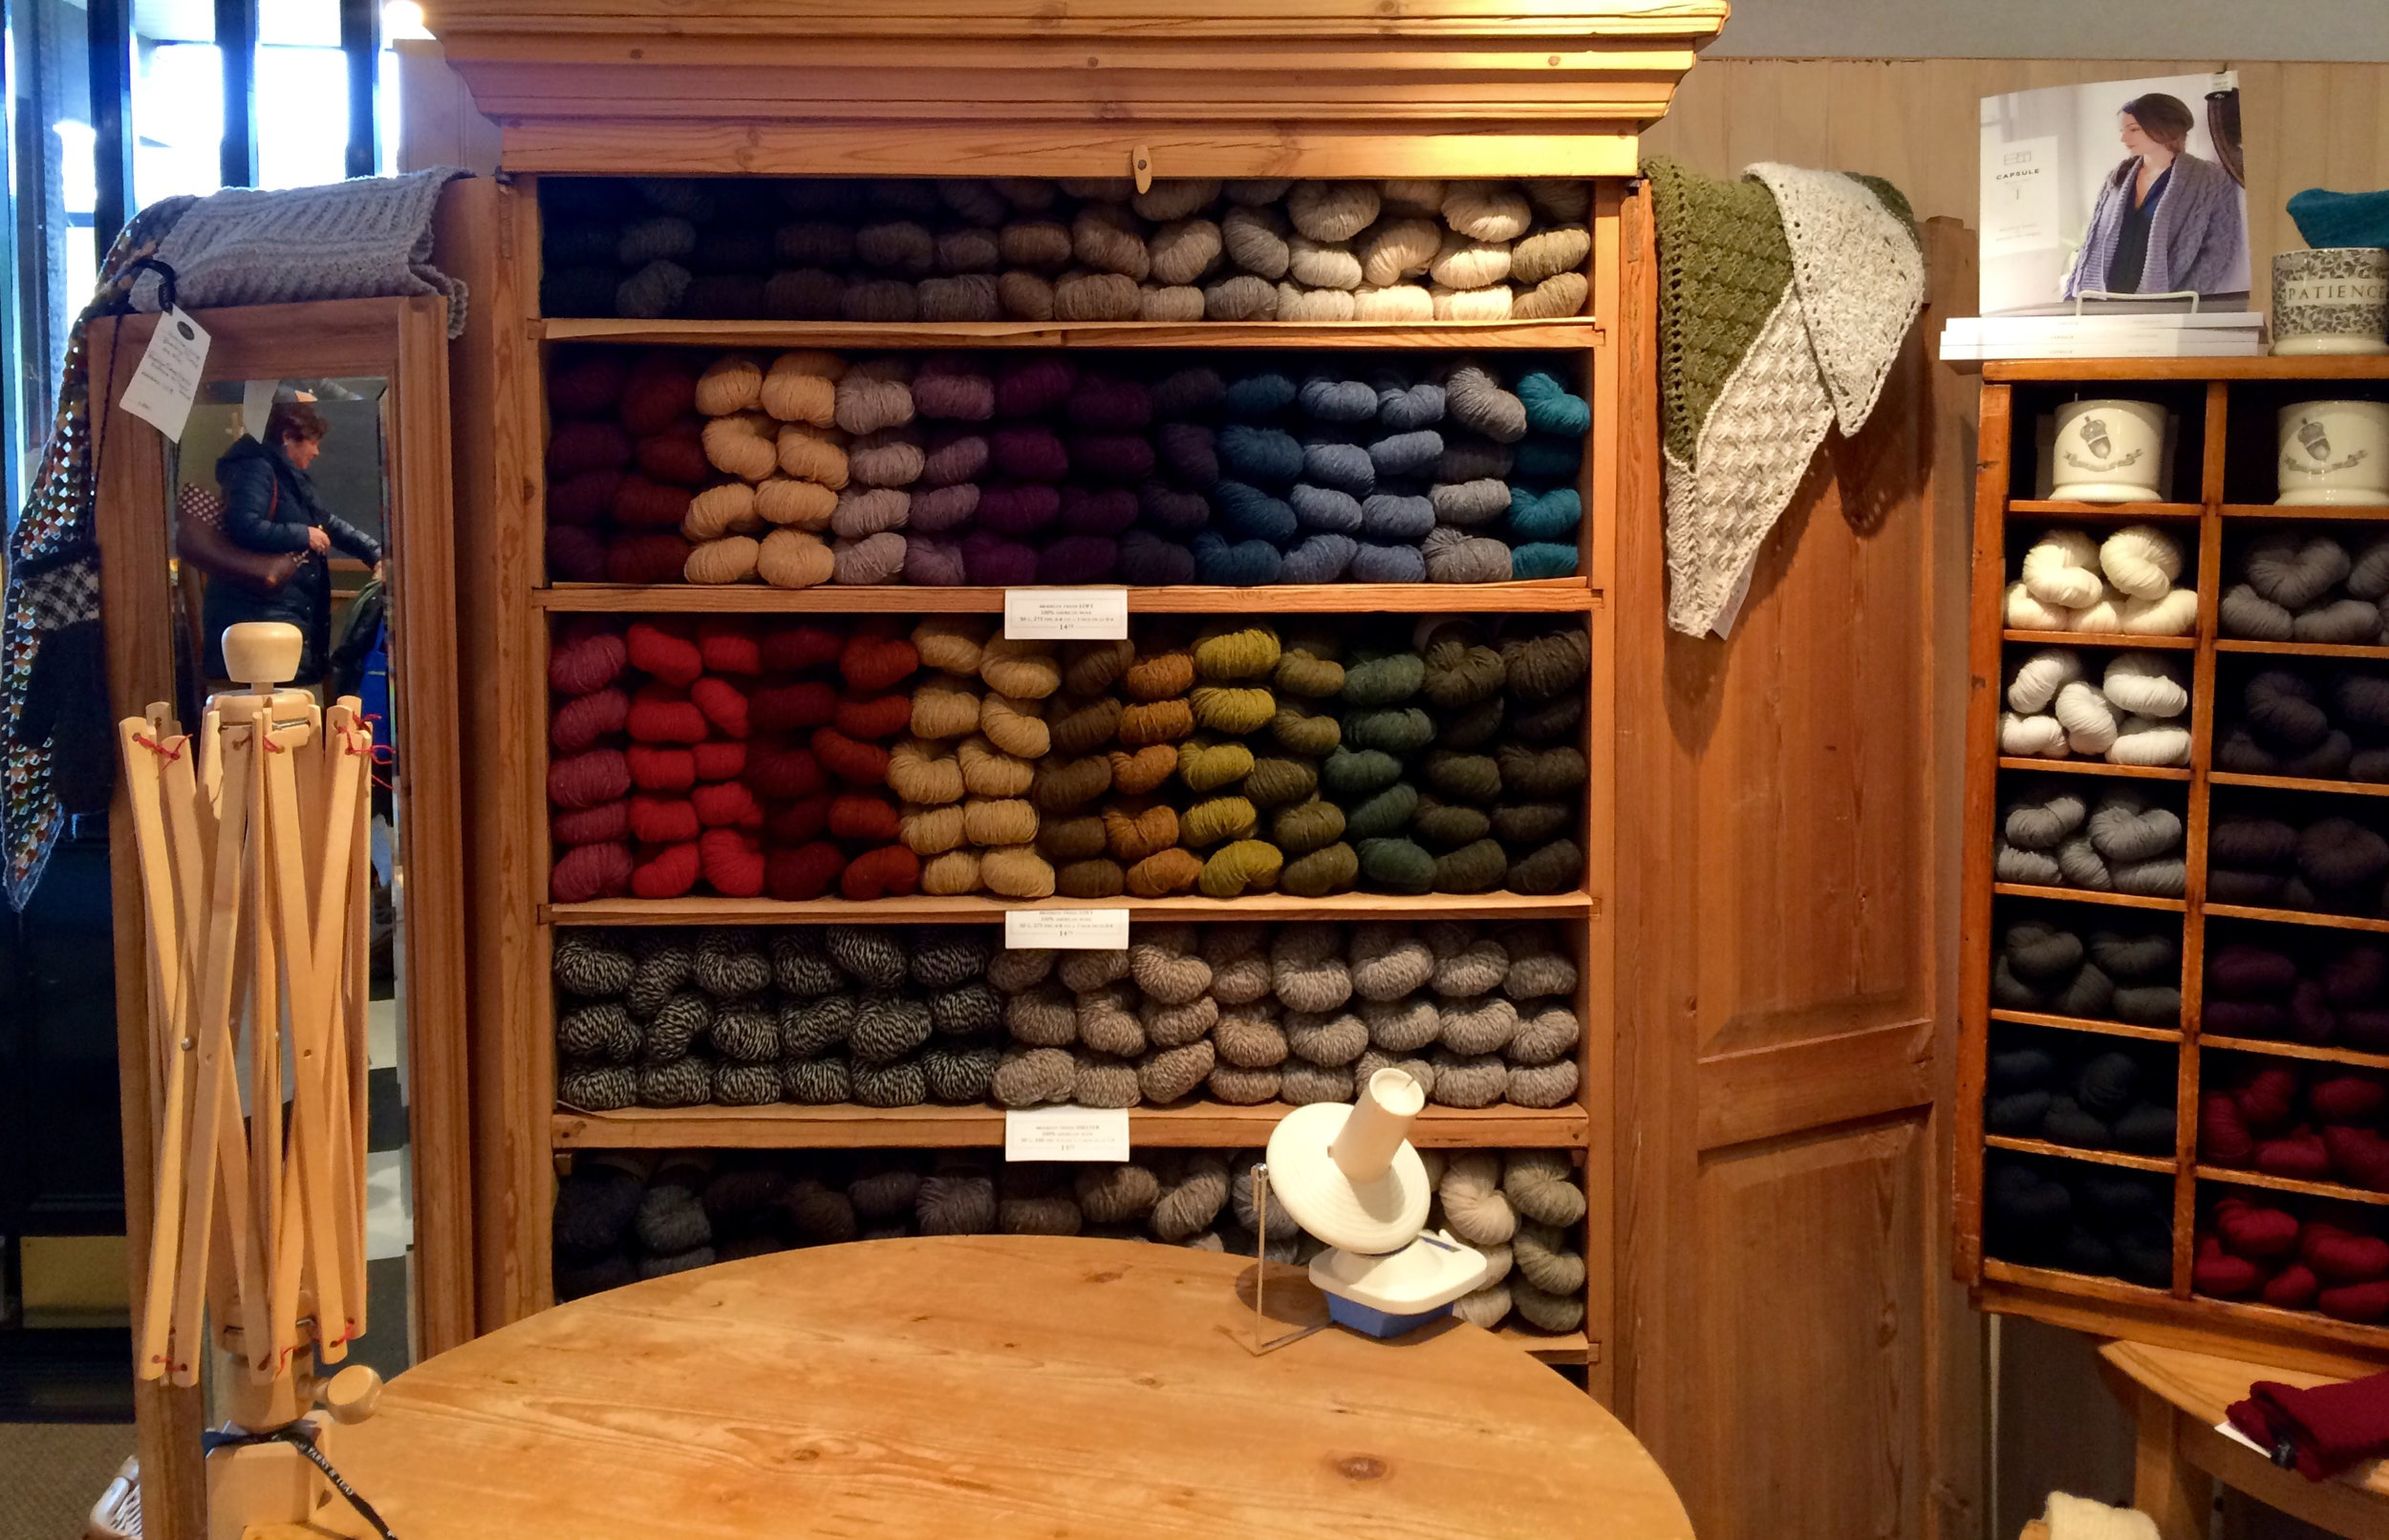 A wardrobe full of yarn just waiting to be wound. The sweet staff will happily wind your yarn for you on site.